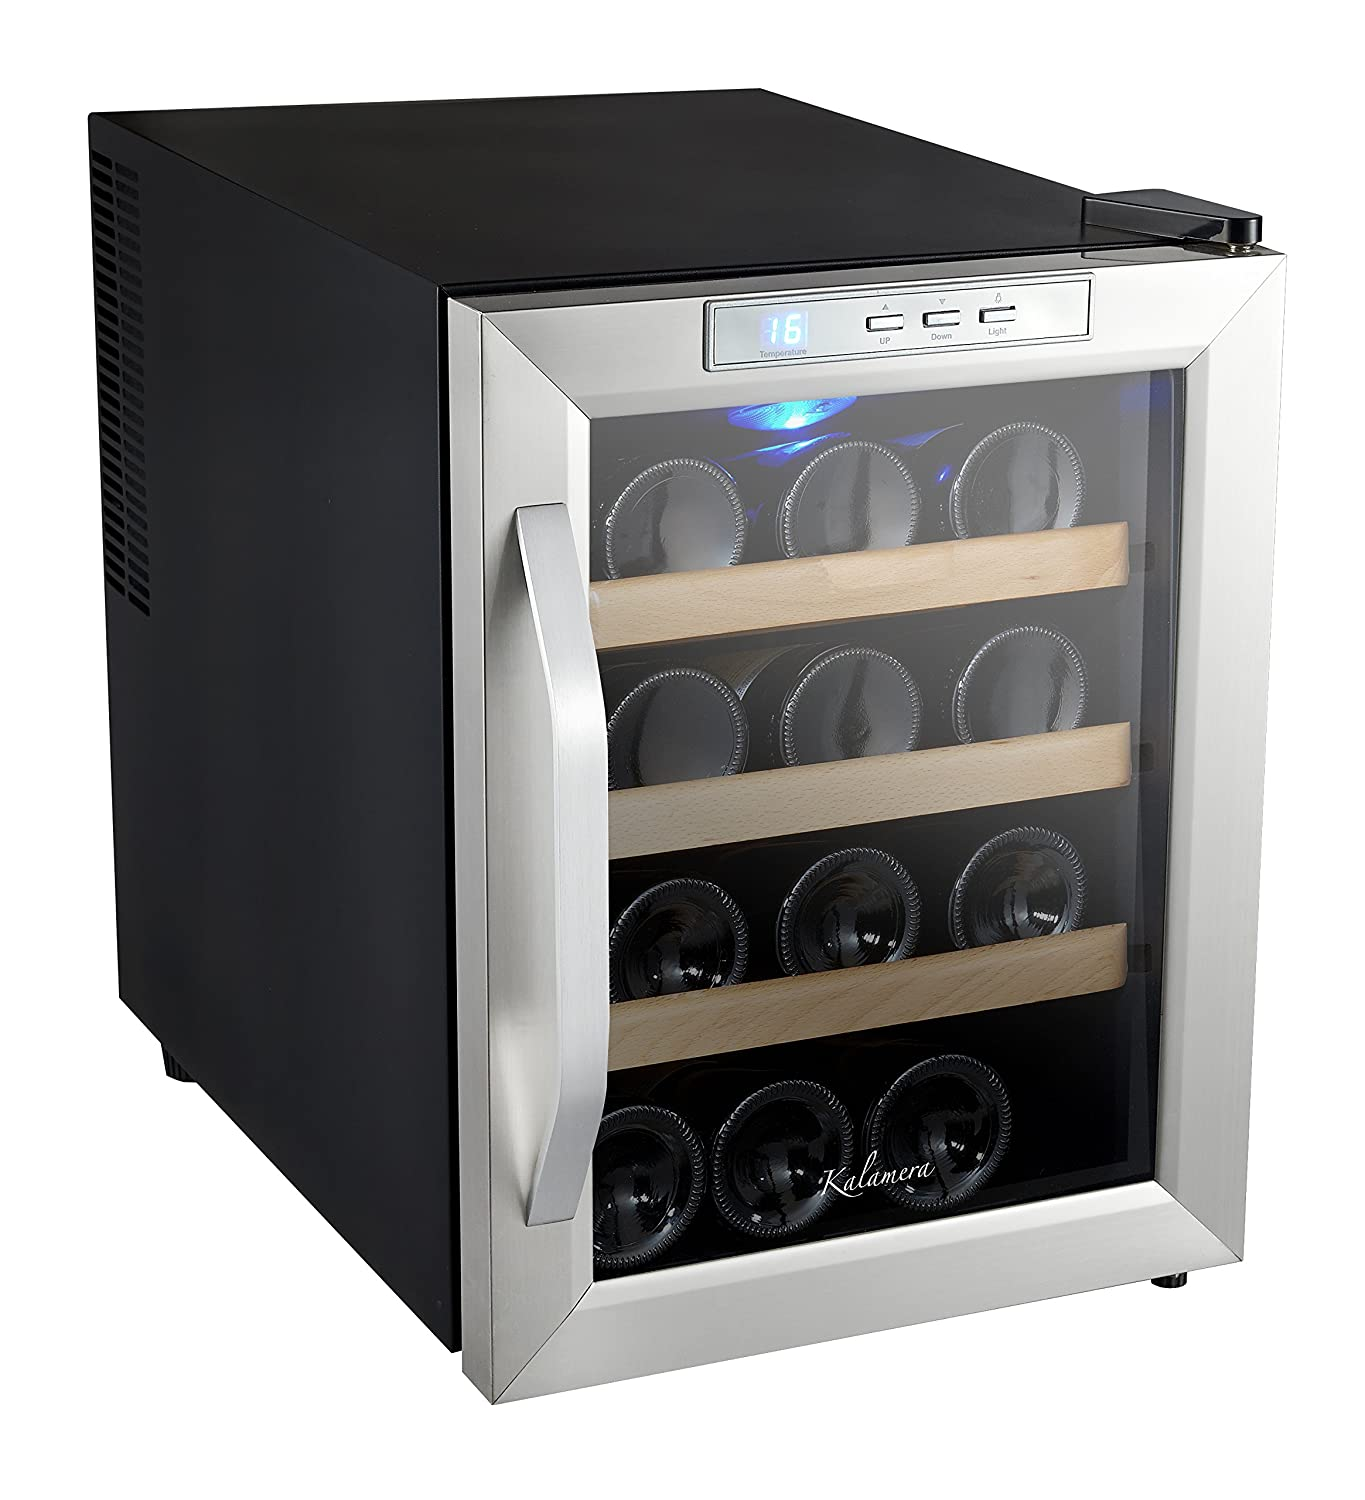 kalamera  bottle counter top stainless steel wine cooler  - kalamera  bottle counter top stainless steel wine cooler refrigeratoramazonca home  kitchen